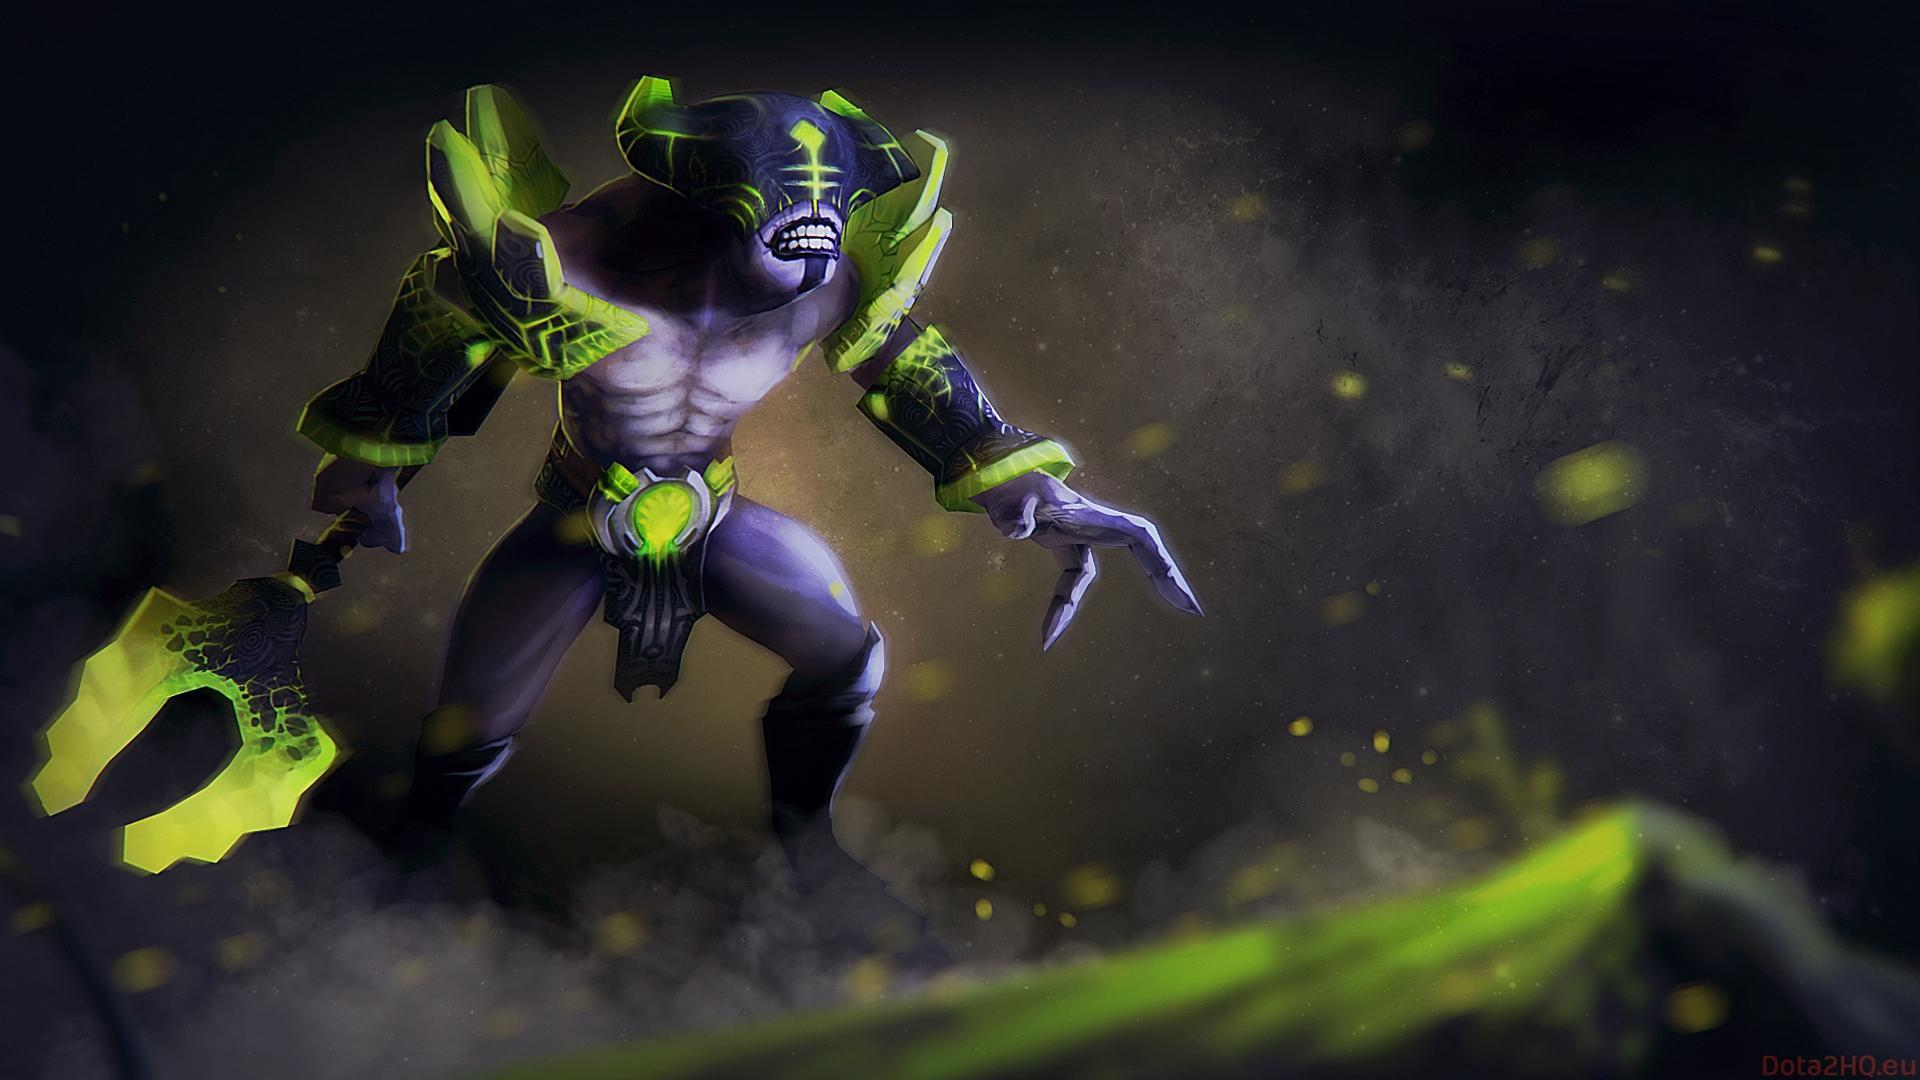 Dota 2 Wallpaper Hd 4k Gambar Gambar Gratis For Android Apk Download